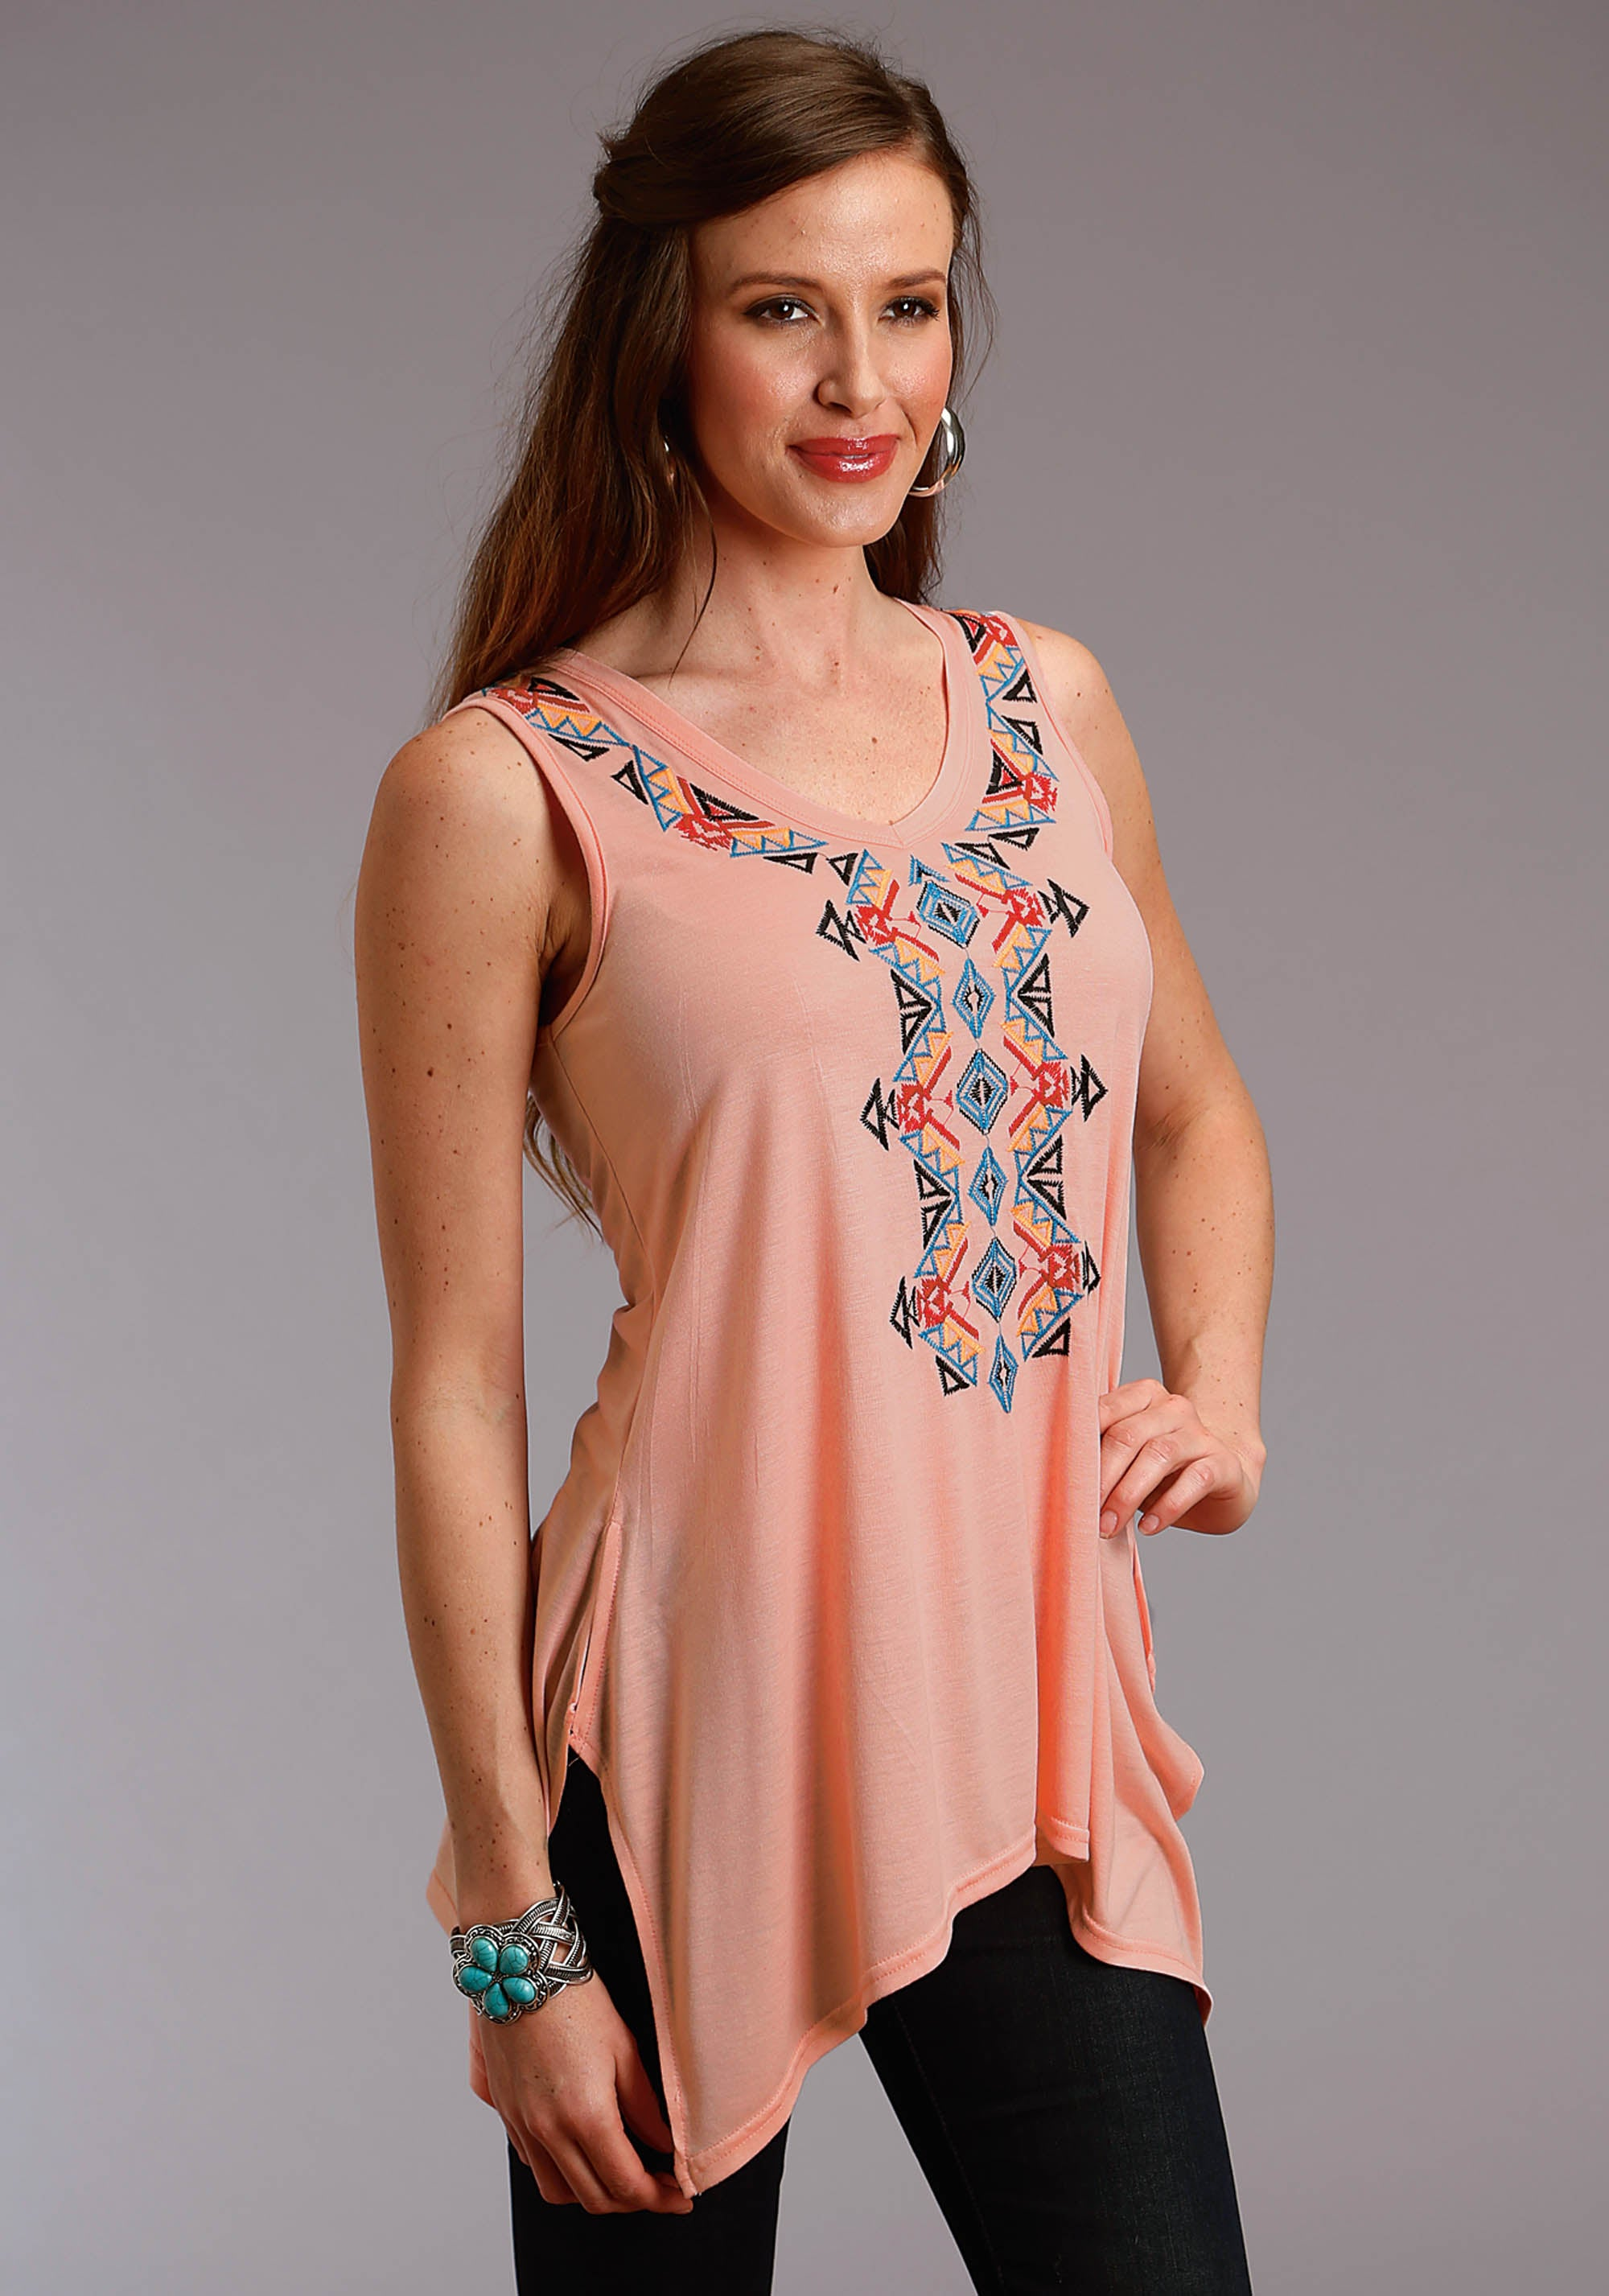 ROPER WOMENS ORANGE 2596 HEATHER JERSEY TANK STUDIO WEST COLLECTION- TAOS SUNRISE LONG SLEEVE